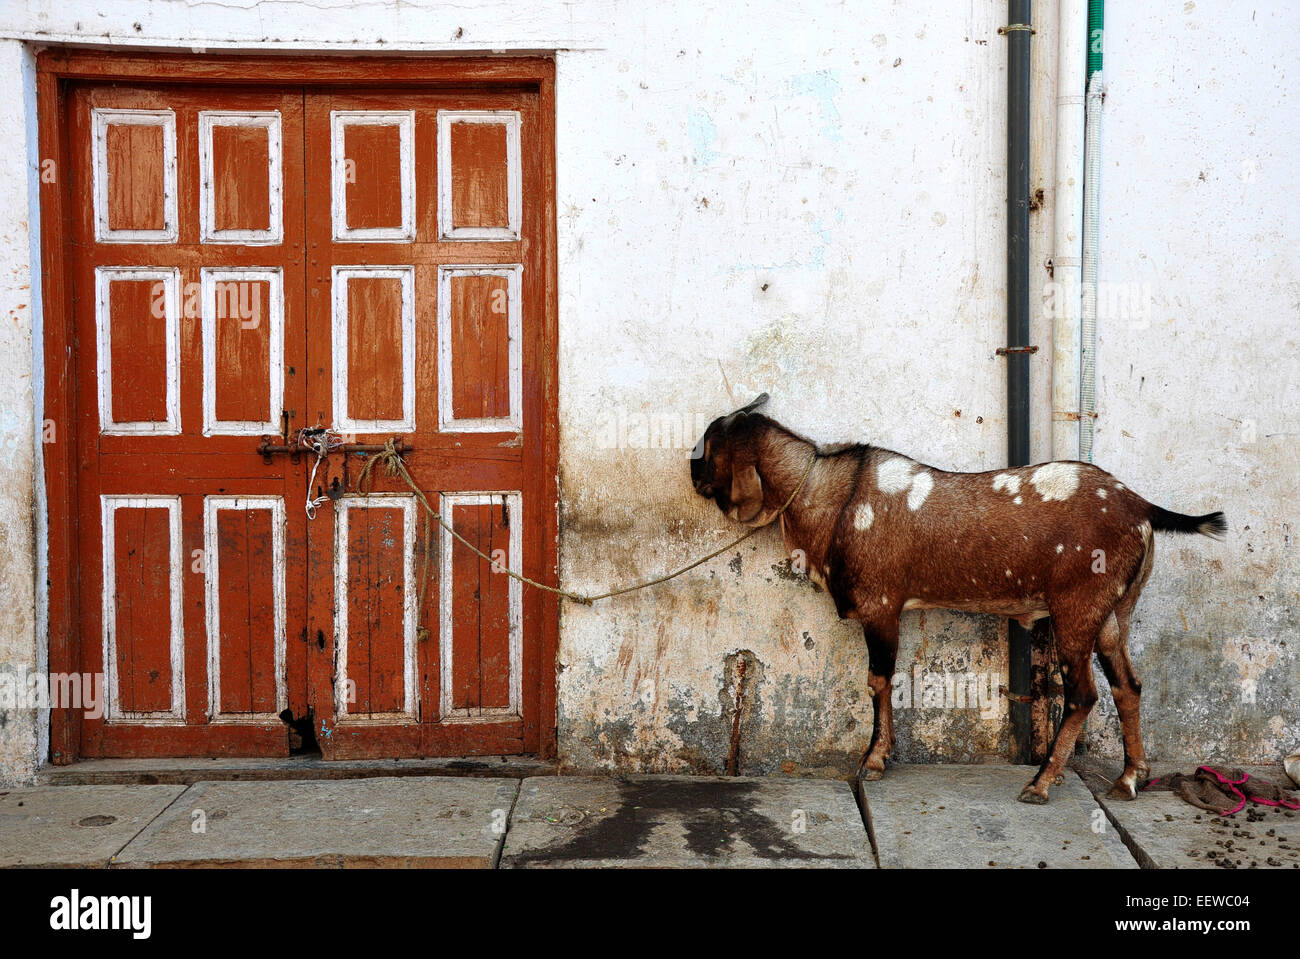 Goat tied to a door in the Dharavi slum, Mumbai - center of the leather production industry - Stock Image